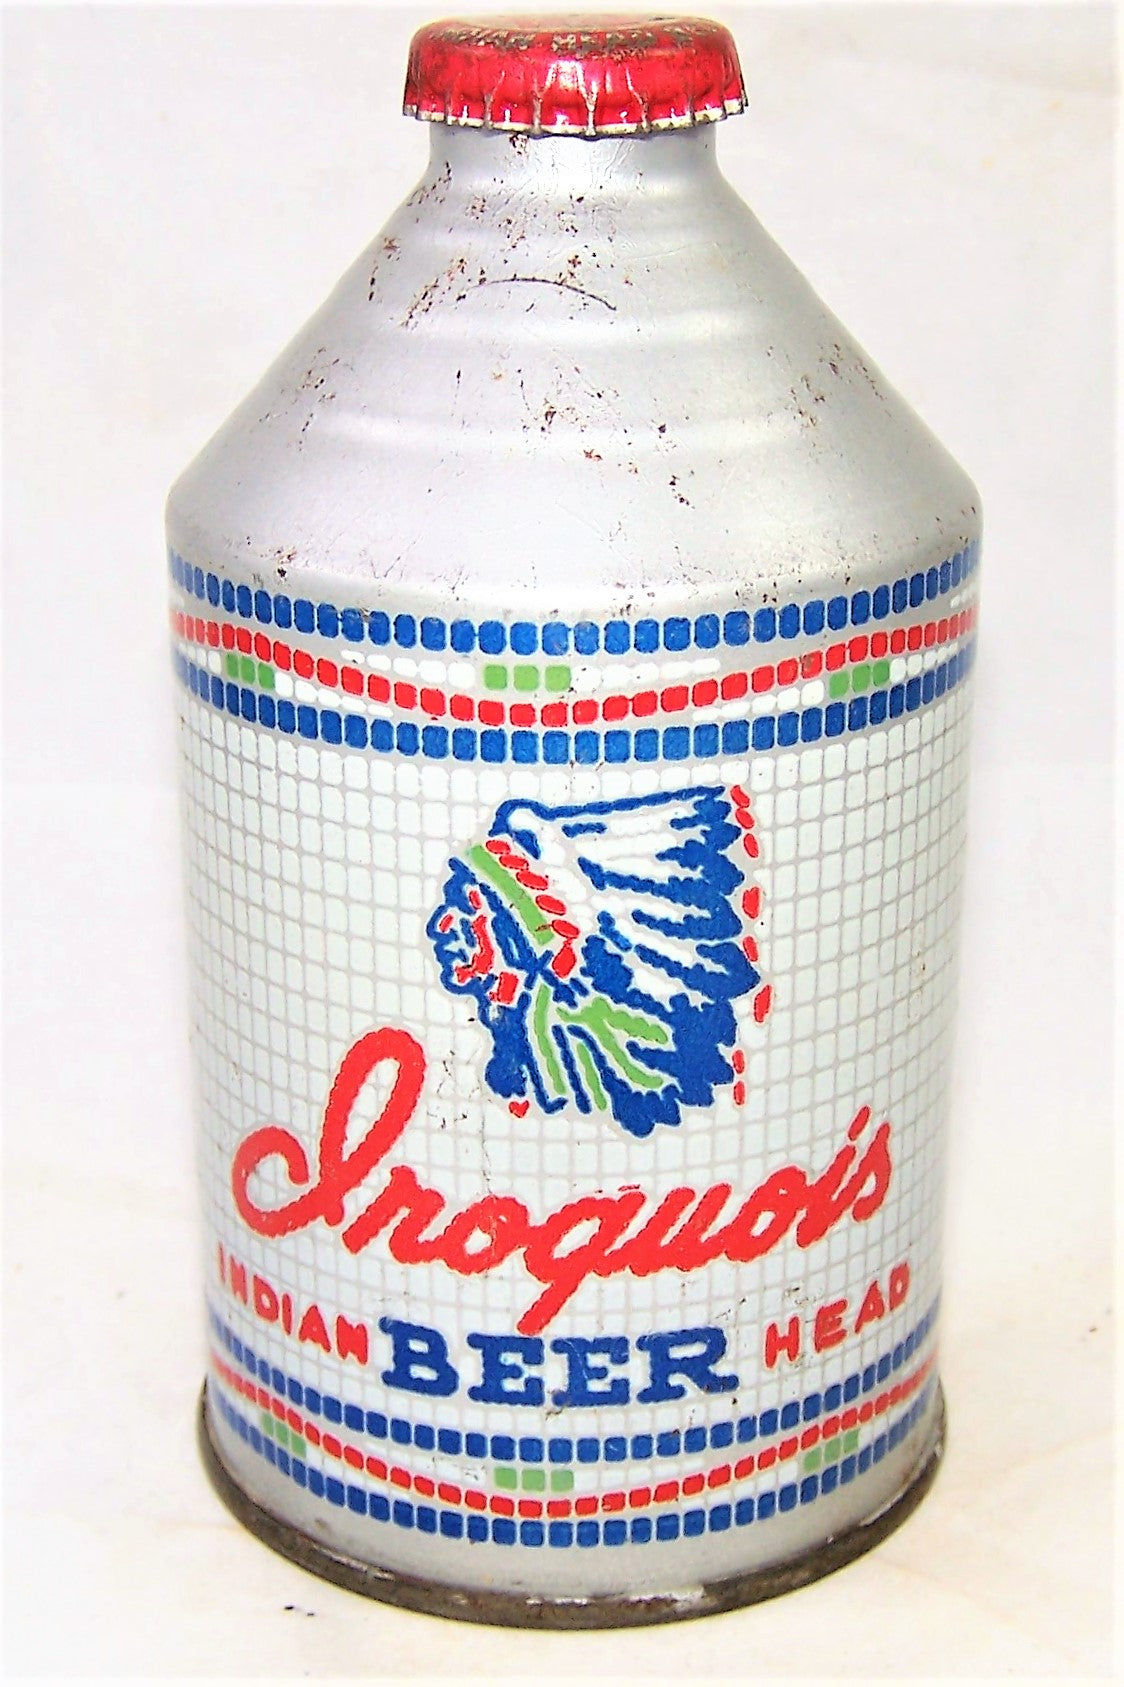 Iroquois Indian Head Beer, USBC 195-30, Grade 1/1- Sold on 5/24/19